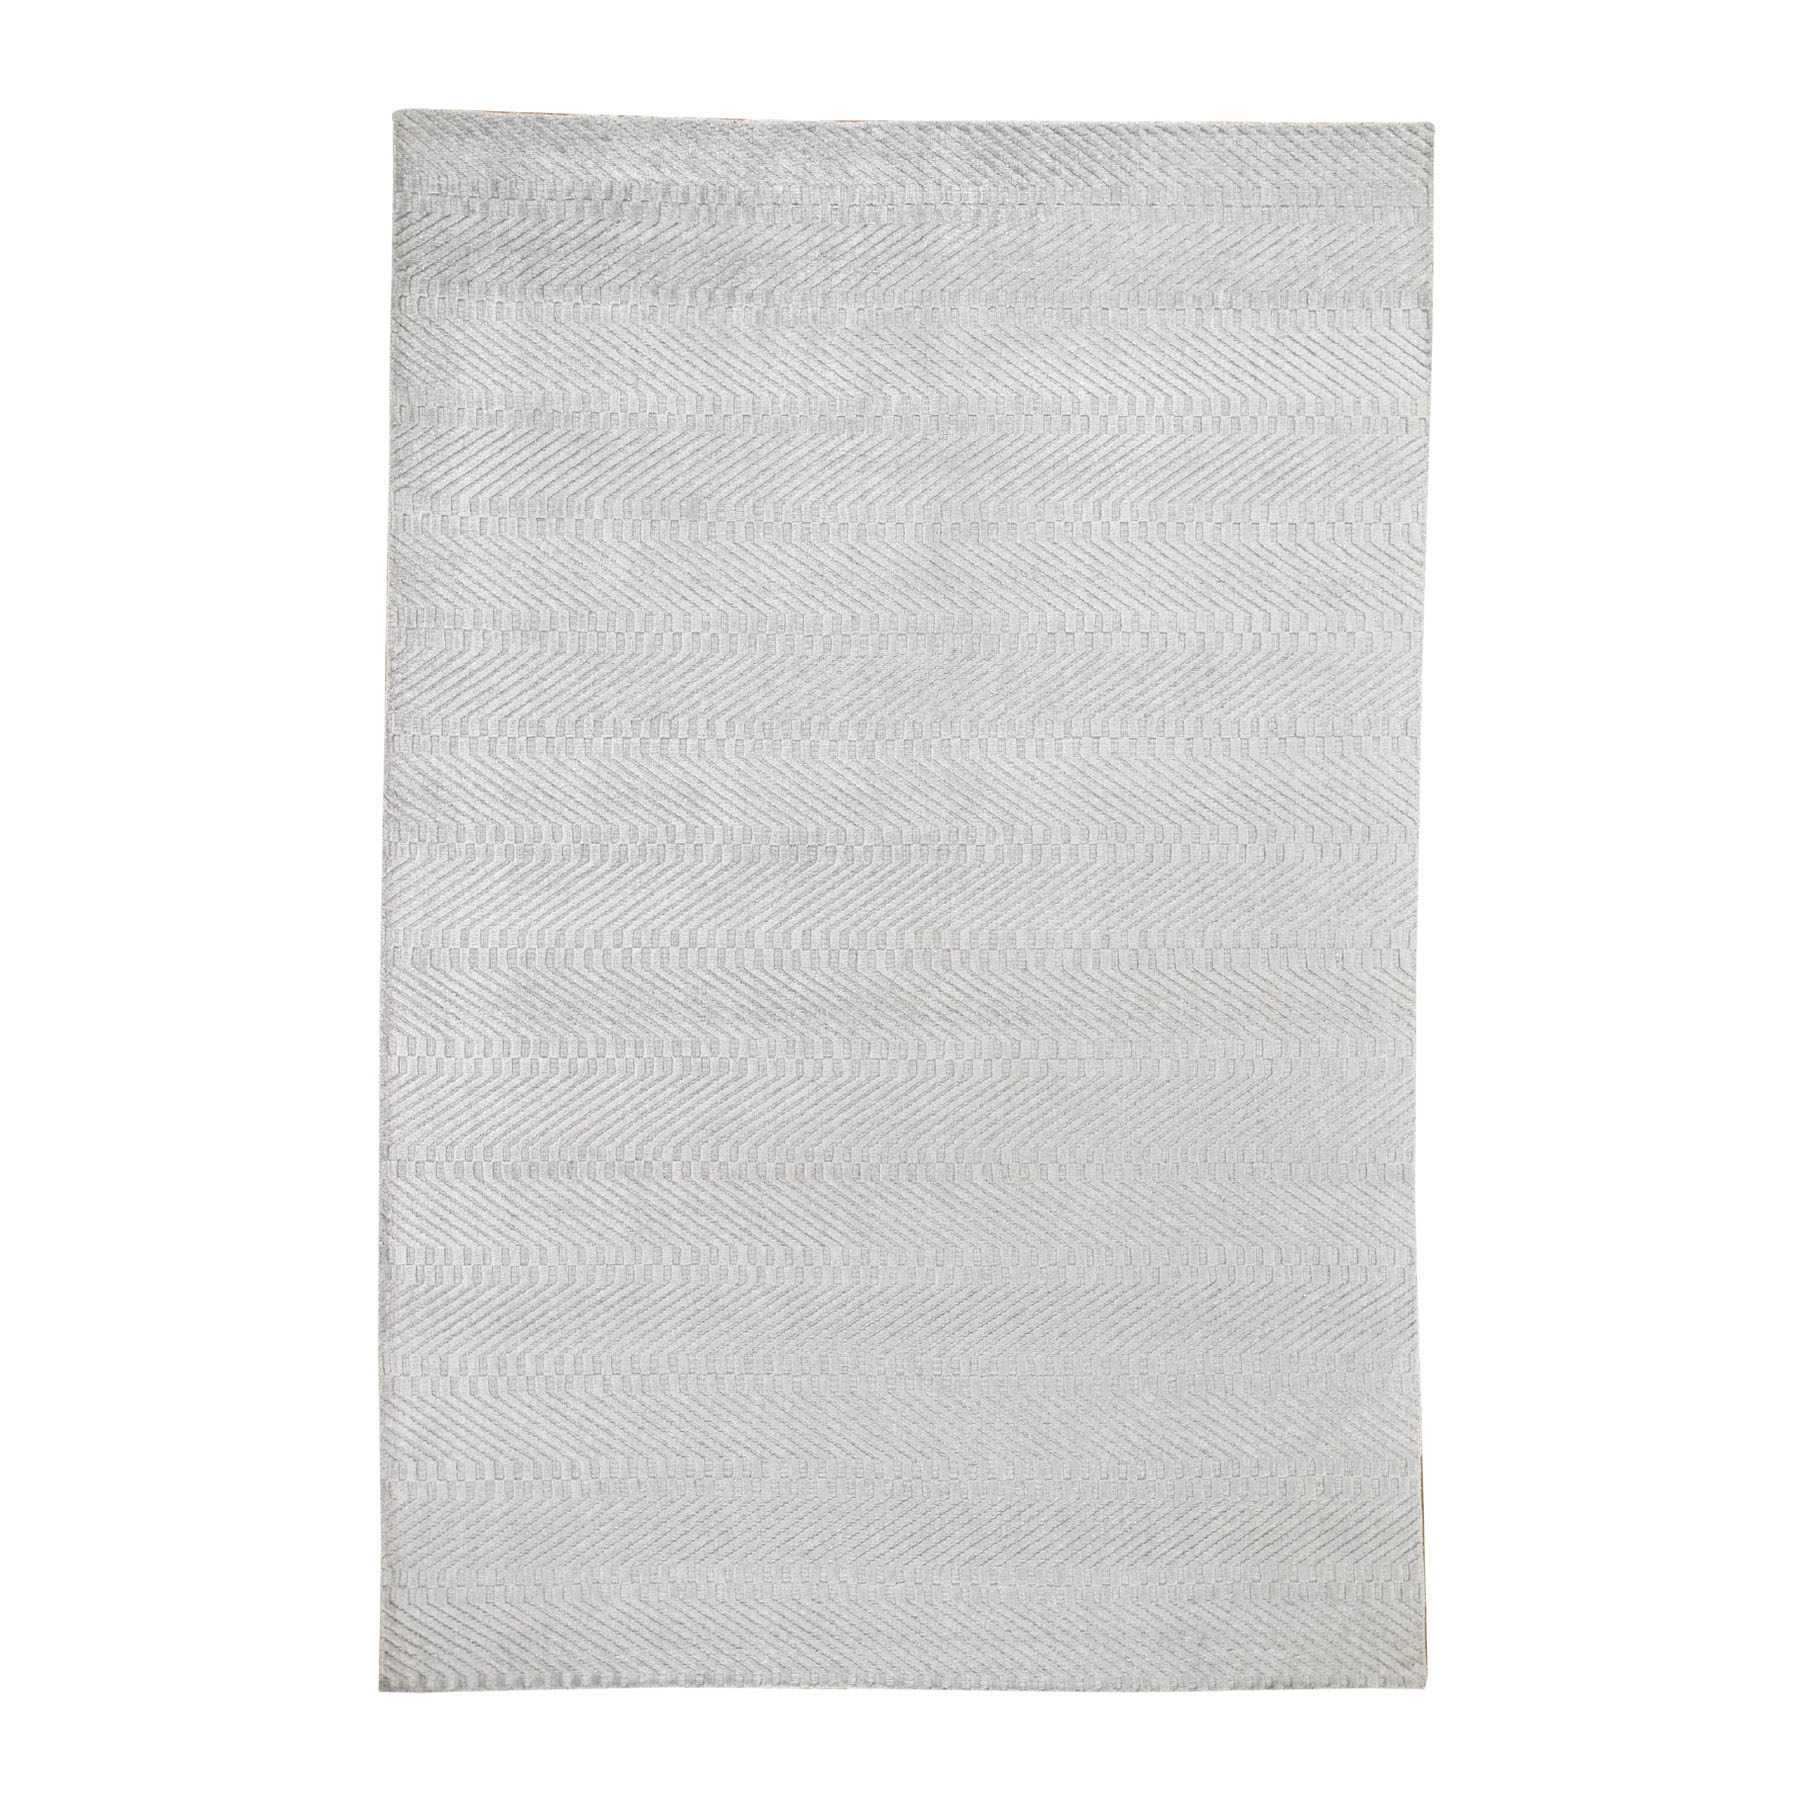 Mid Century Modern Collection Hand Loomed Grey Rug No: 0194888